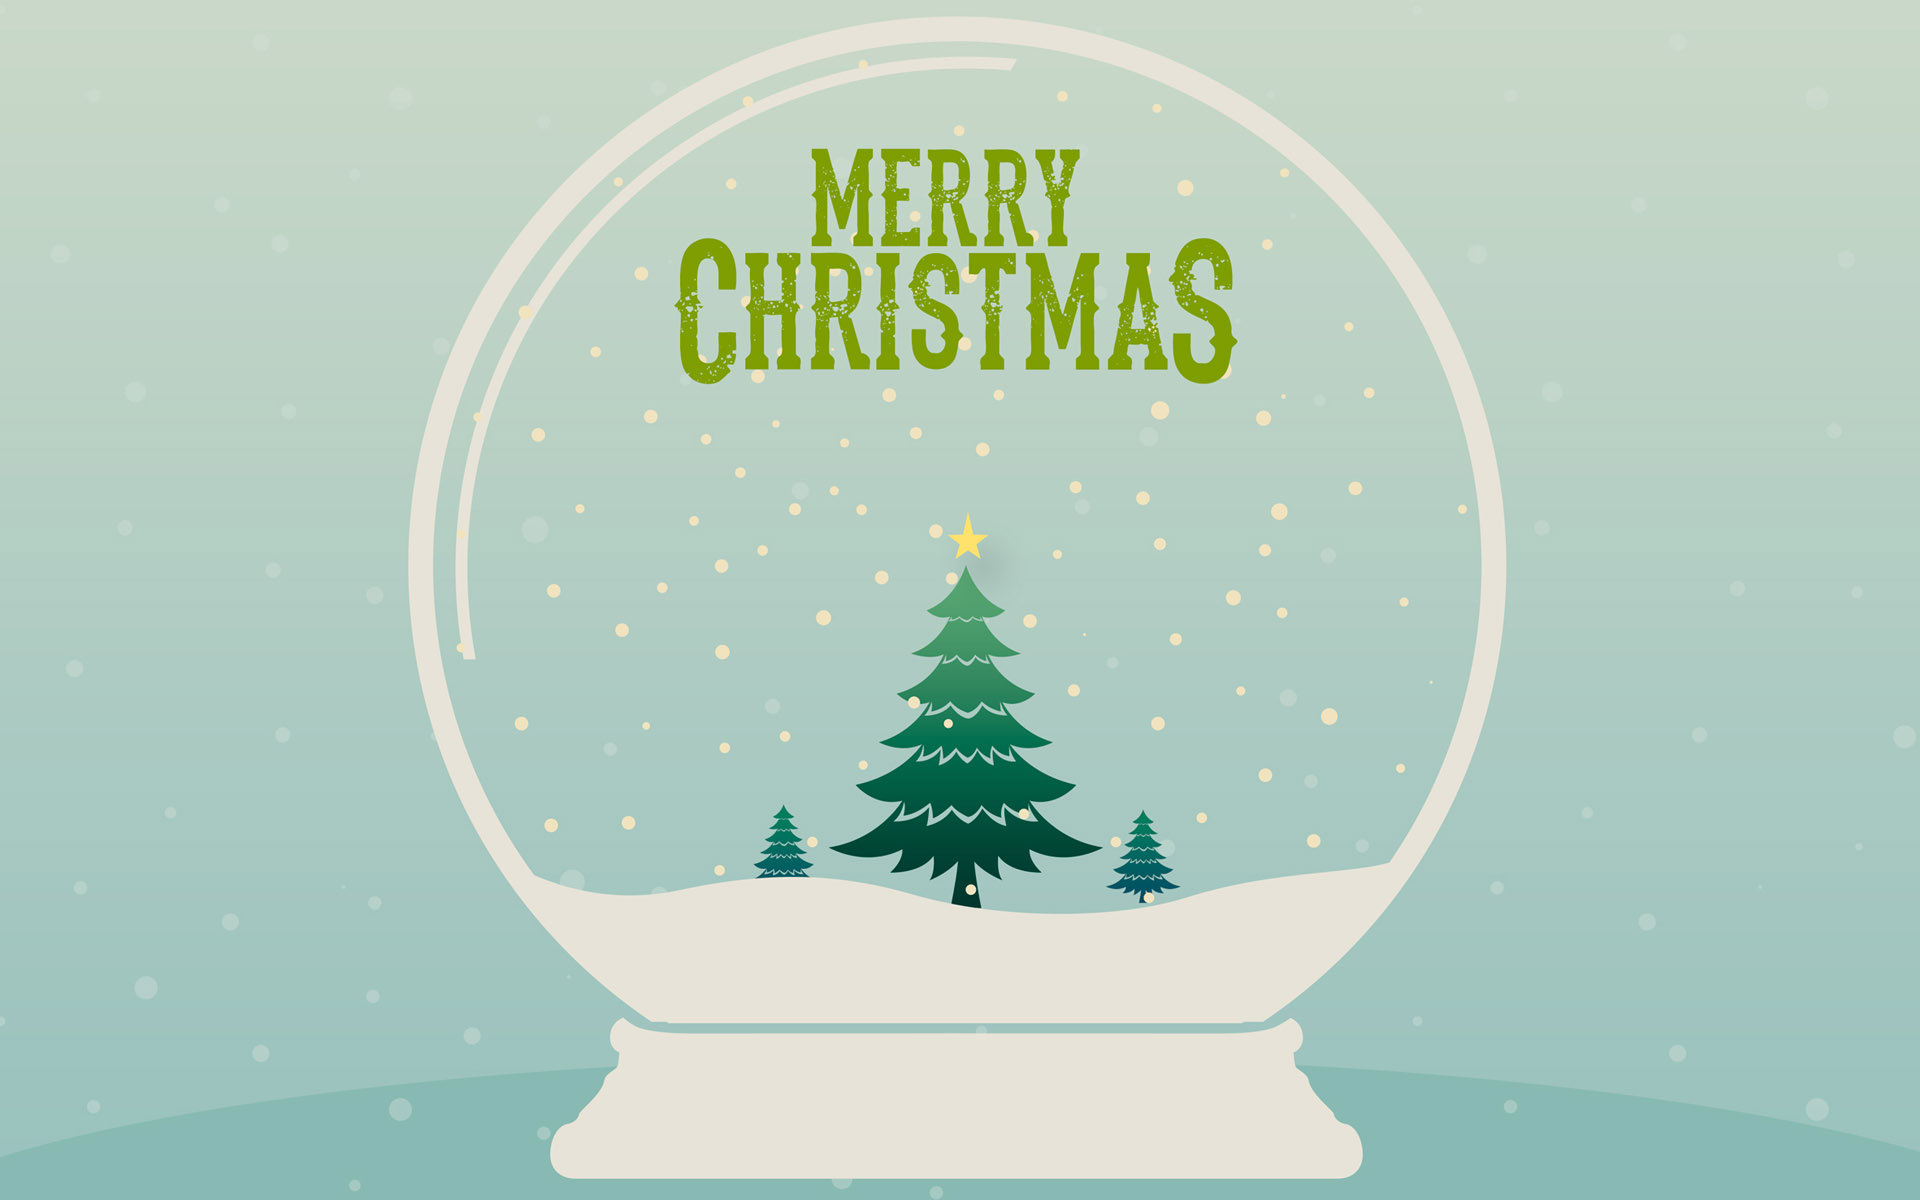 merry christmas snow globe wallpaper 62417